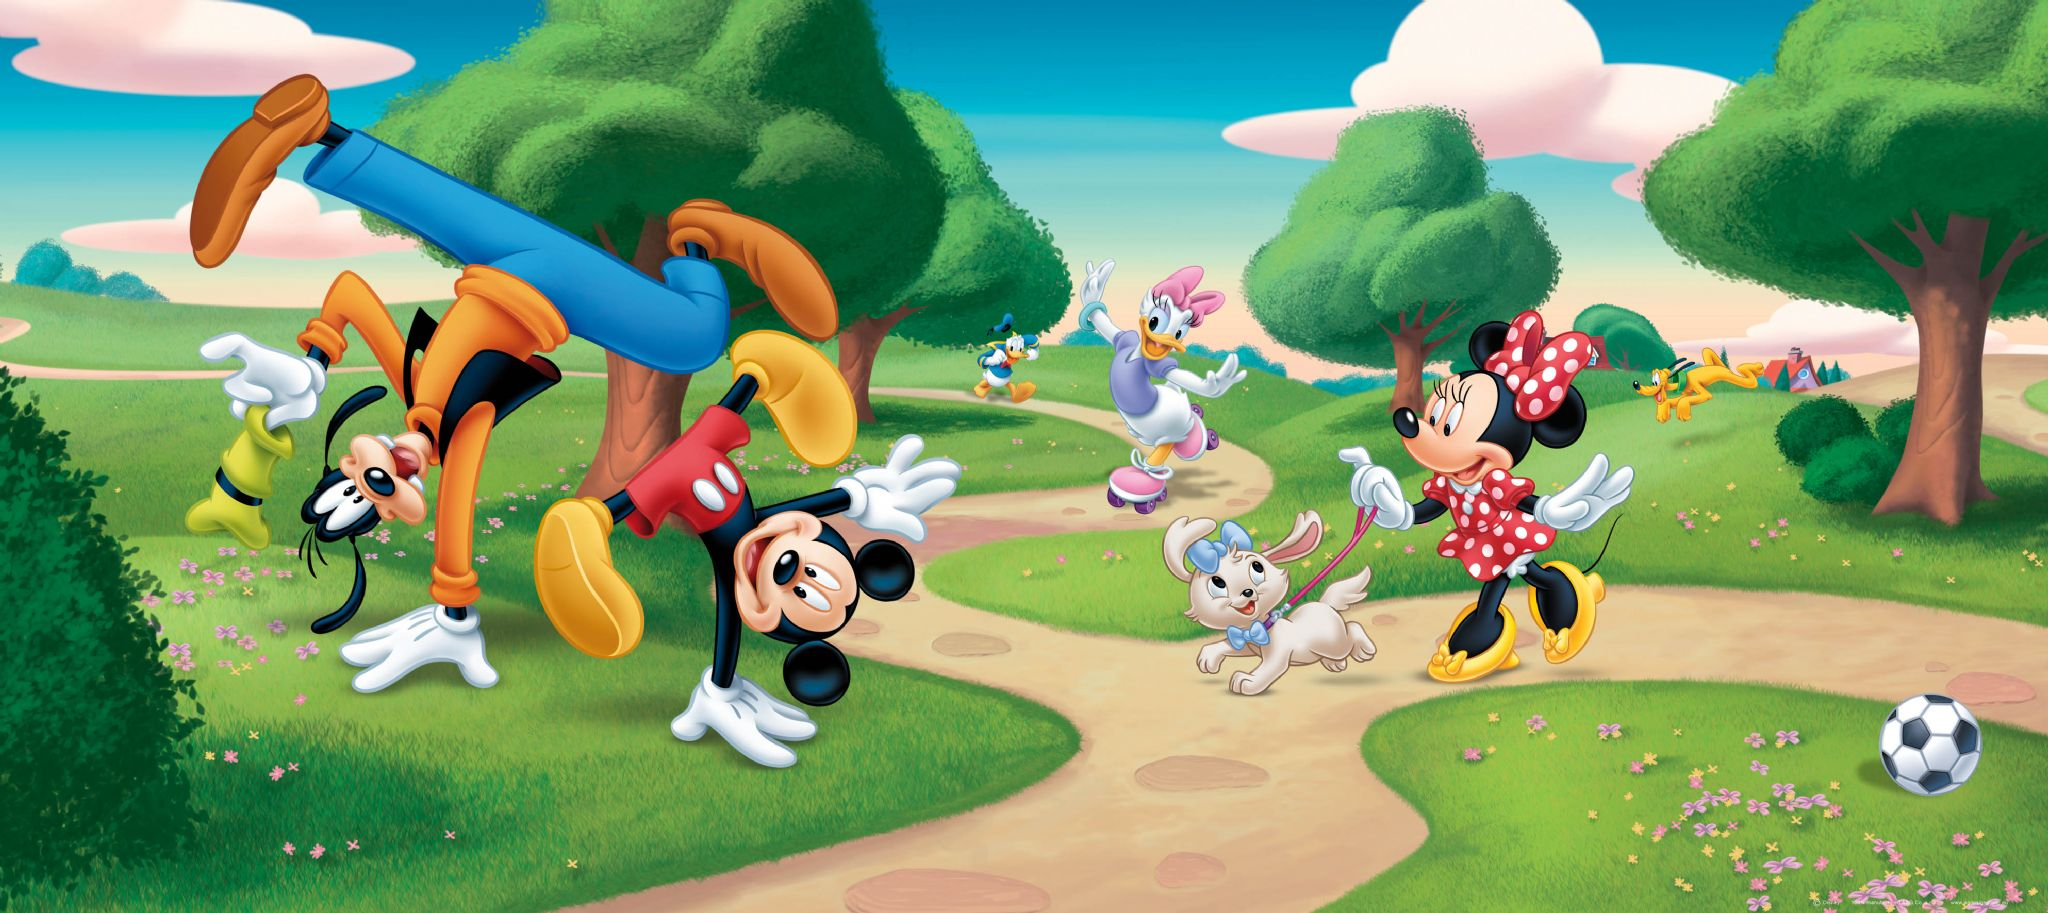 Mickey Mouse Park Panoramic Mural Wallpaper 202x90cm